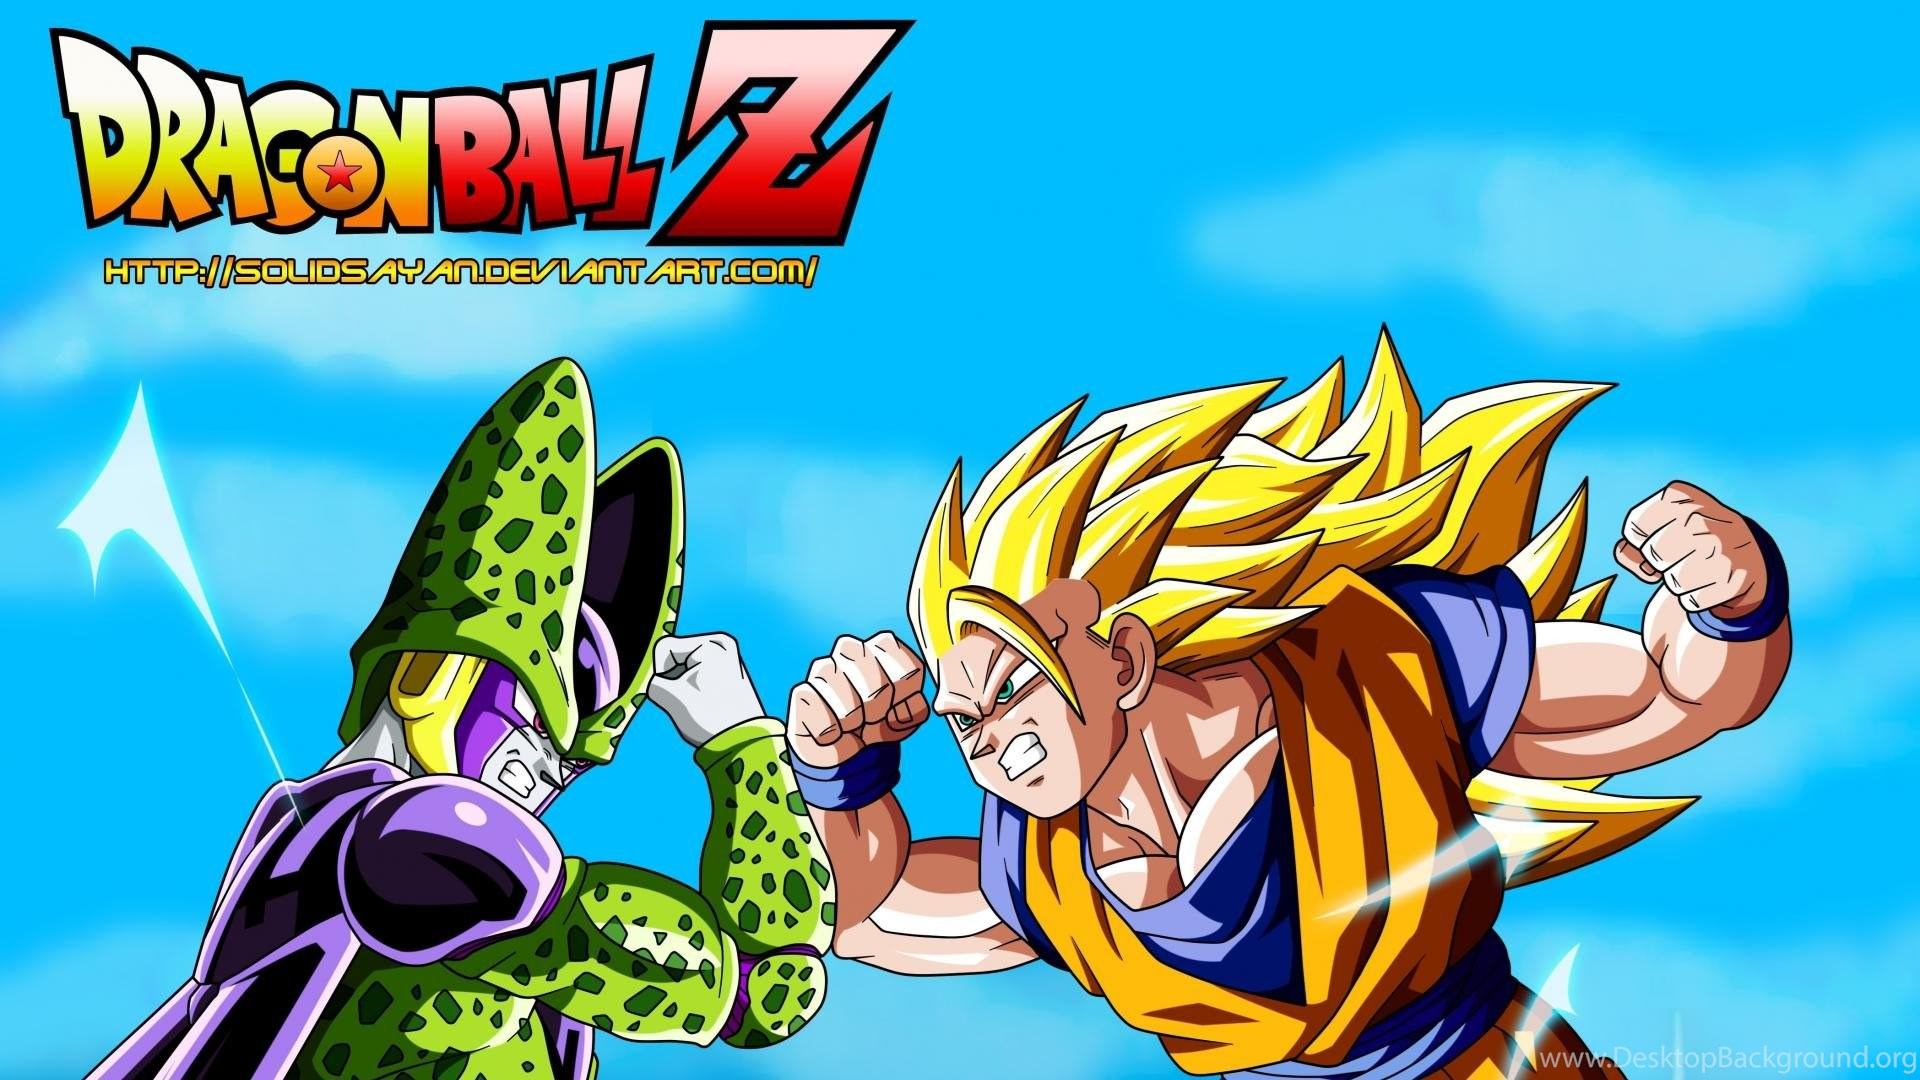 Goku Perfect Cell Dragon Ball Z Gt Wallpapers Desktop Background